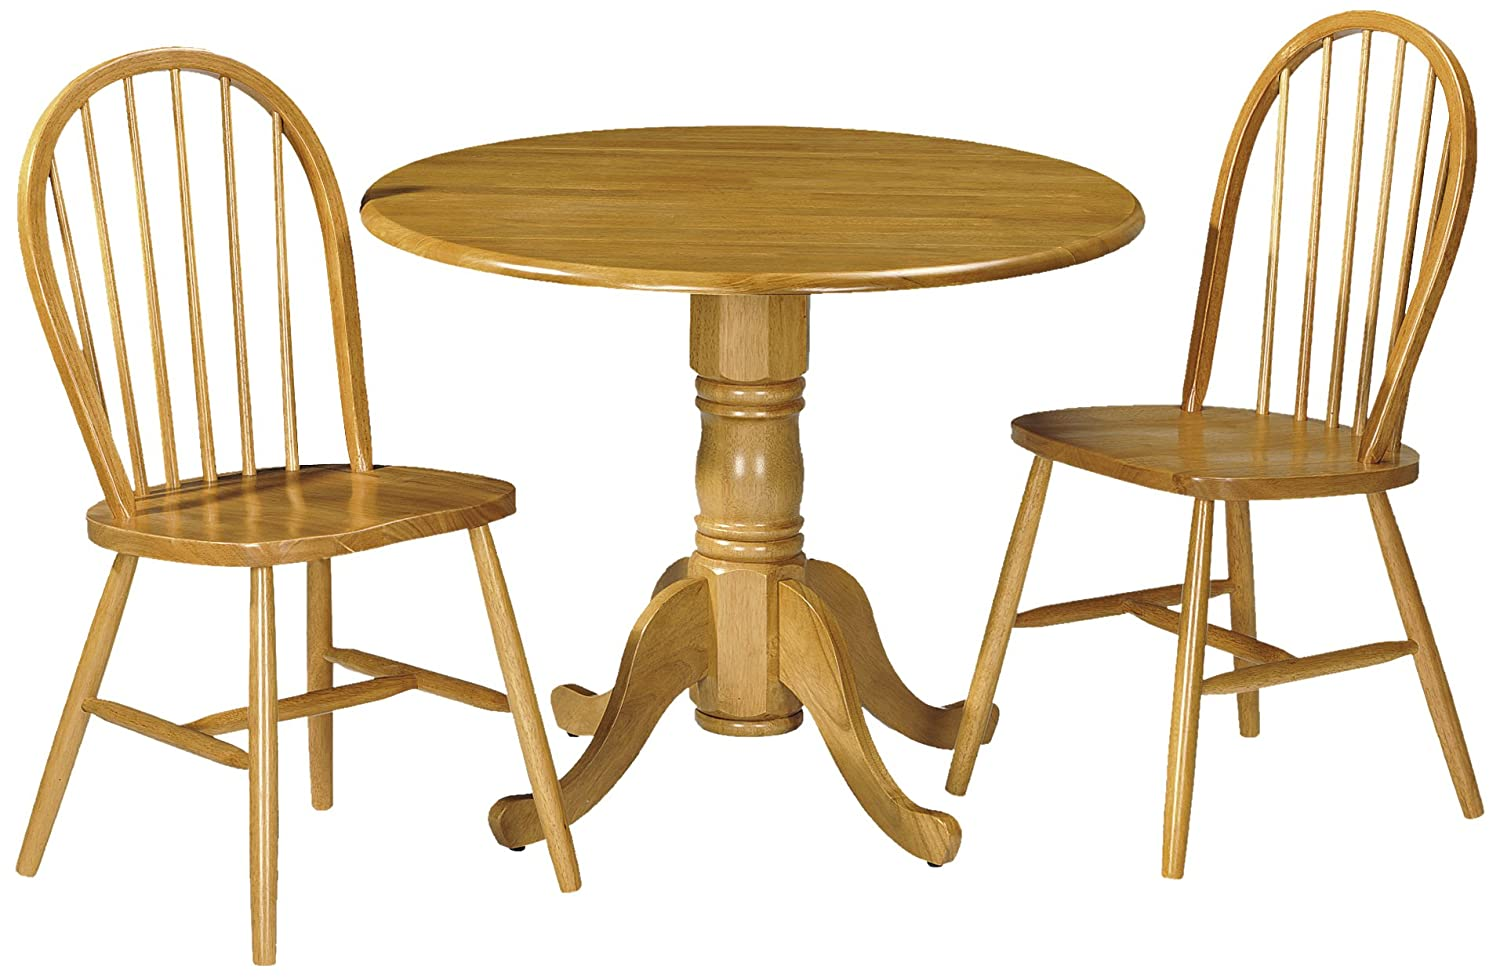 Julian Bowen Dundee Dropleaf Table Set With 2 Windsor Dining Chairs, Honey  Pine Finish: Amazon.co.uk: Kitchen U0026 Home